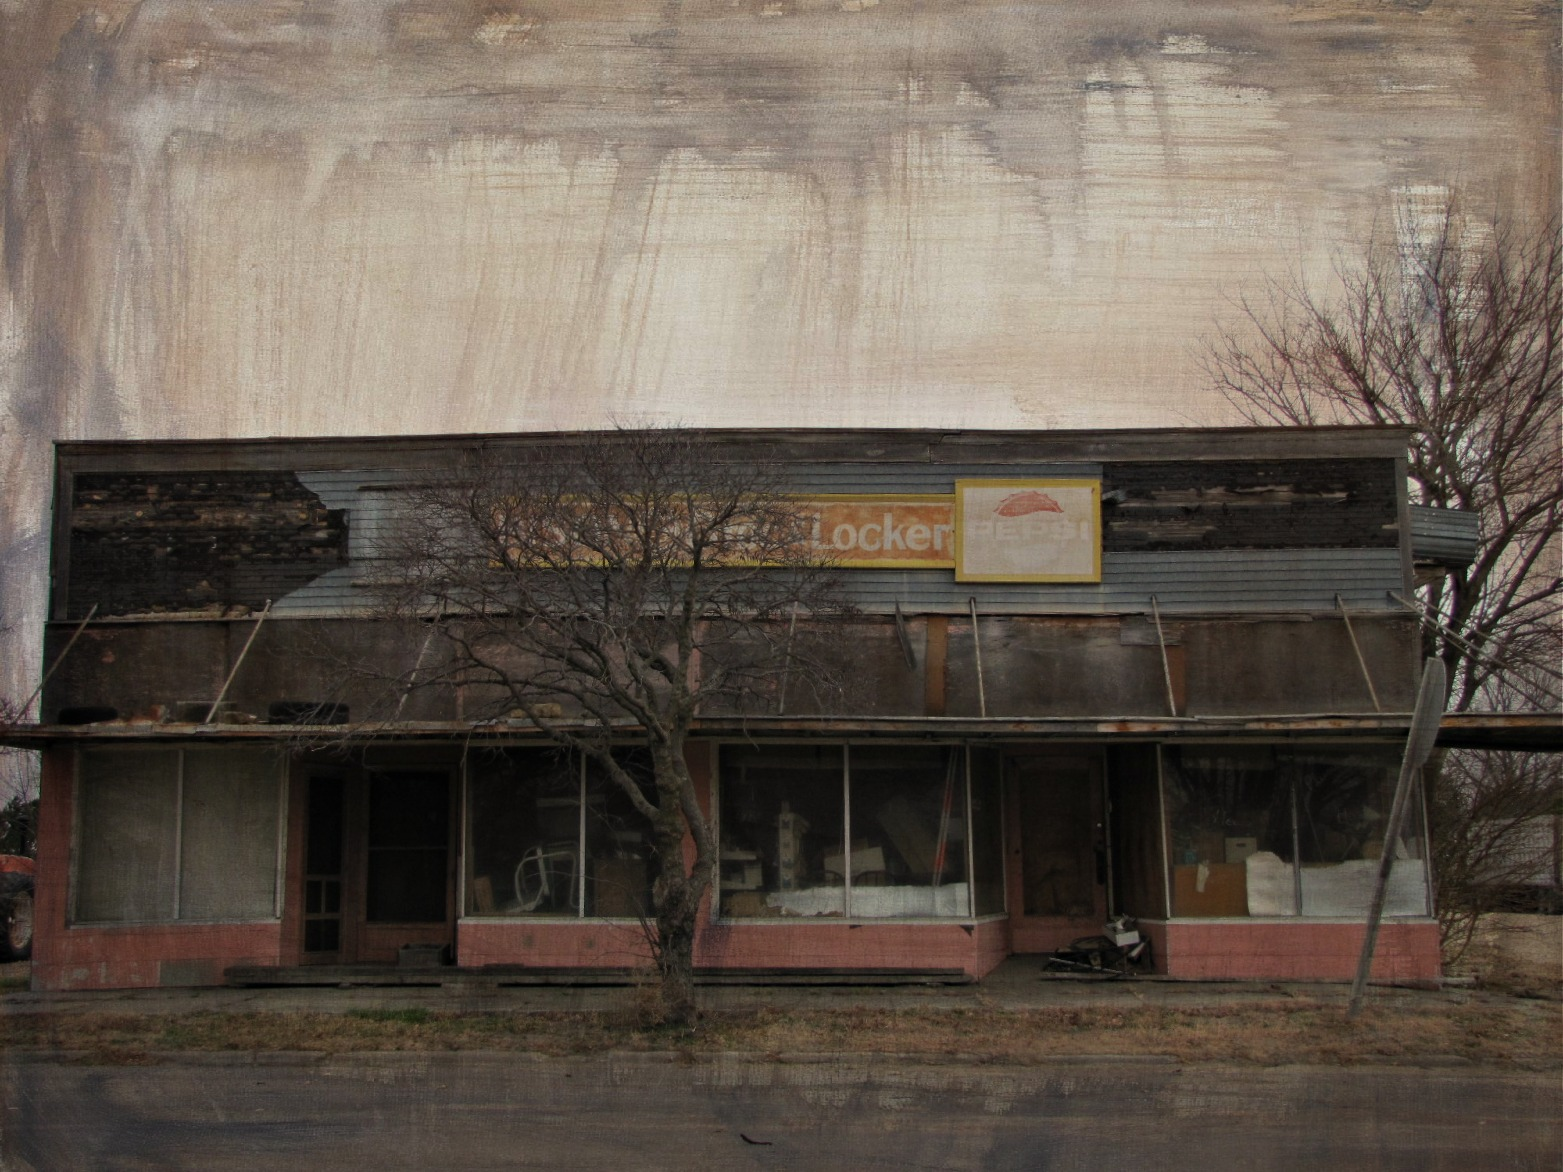 Kansas rush county otis - Reflection Abandoned Awning Decay Kansas Pepsi Grocery Bison Enhanced Smalltown Metalsigns Meatlocker Persicola